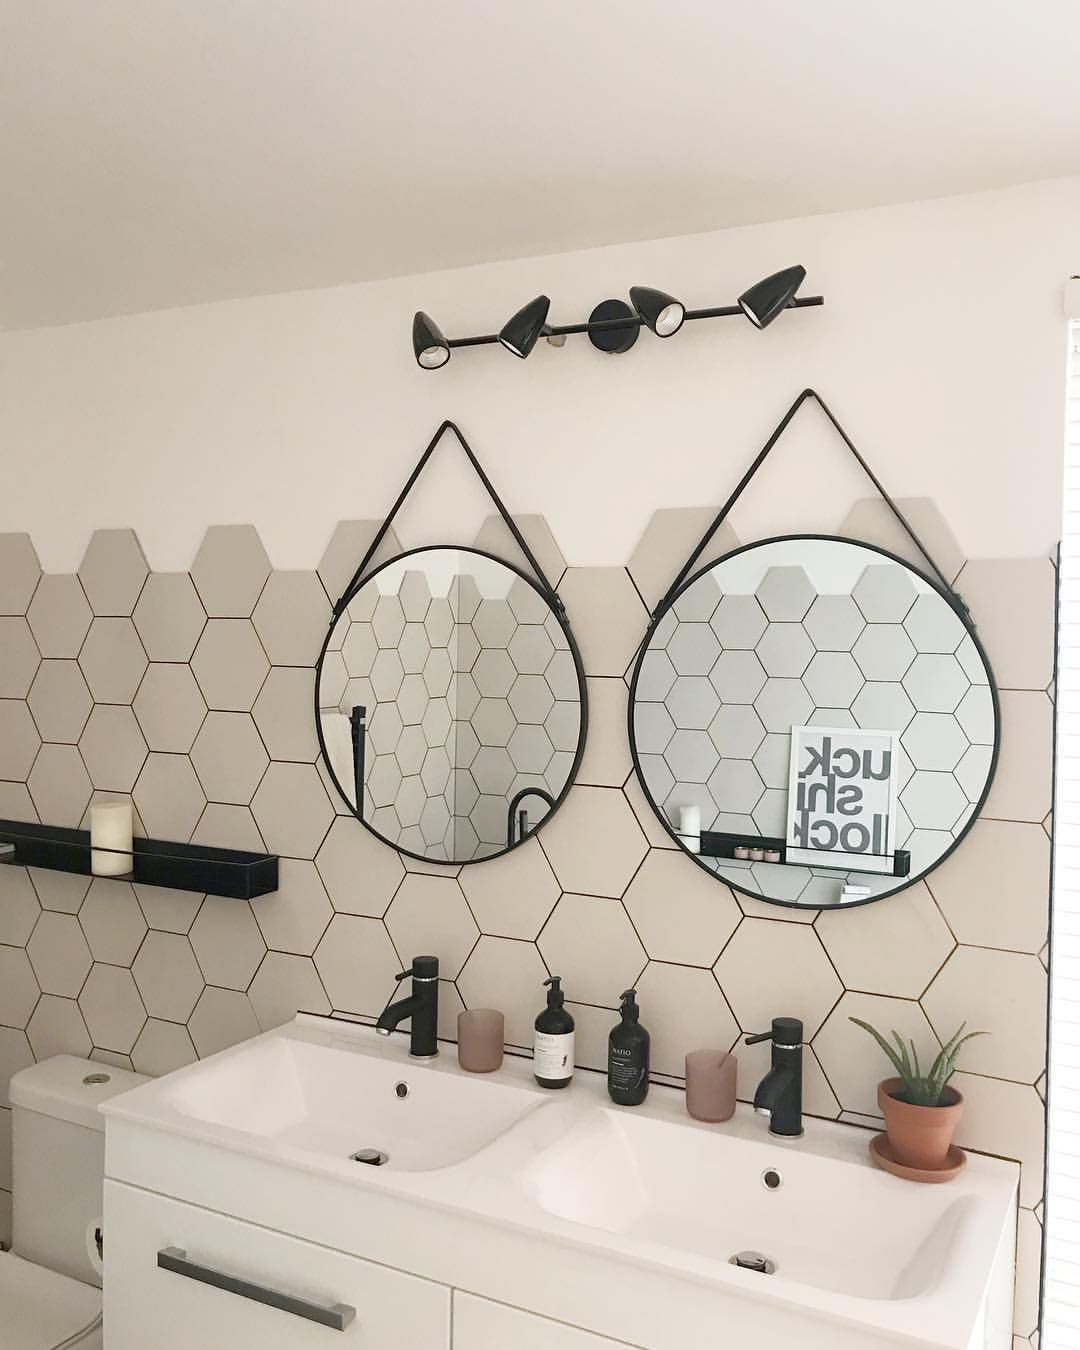 Monochrome Bathroom With Hexagon Tiles Double Sink And Round